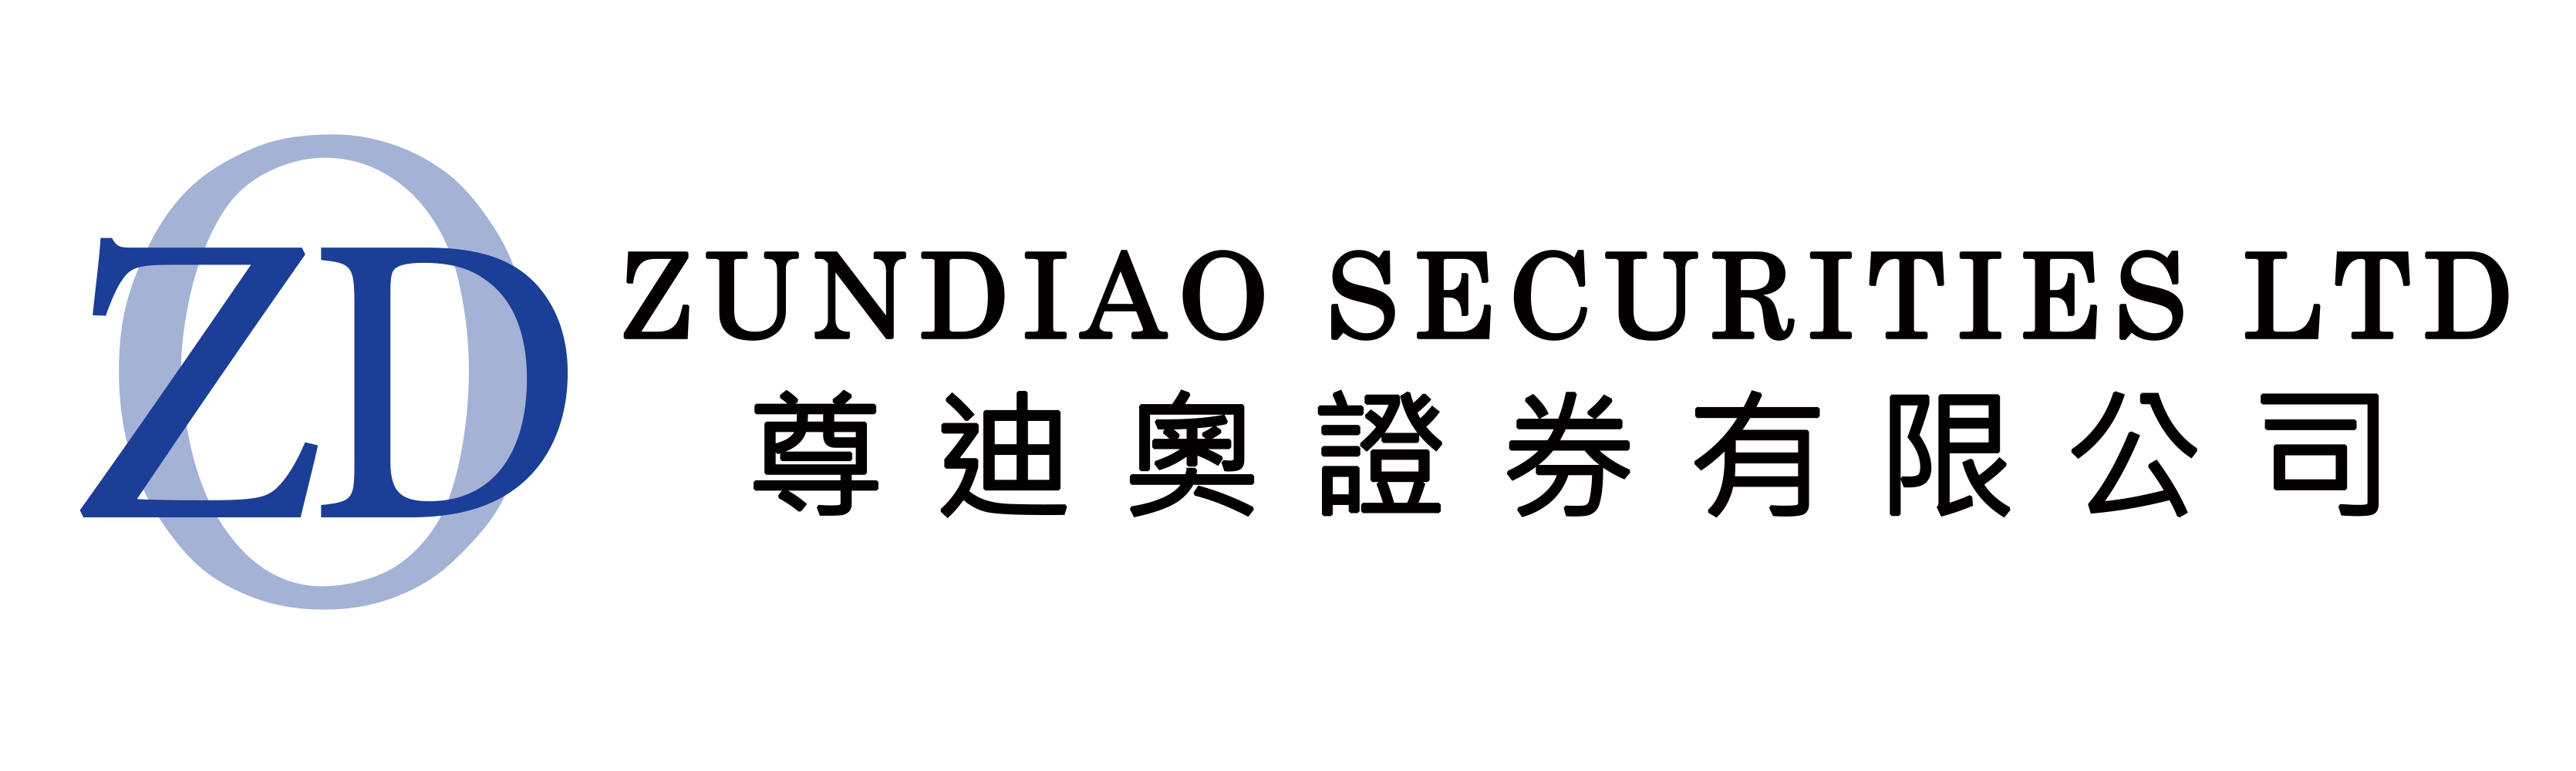 Zundiao Securities Ltd